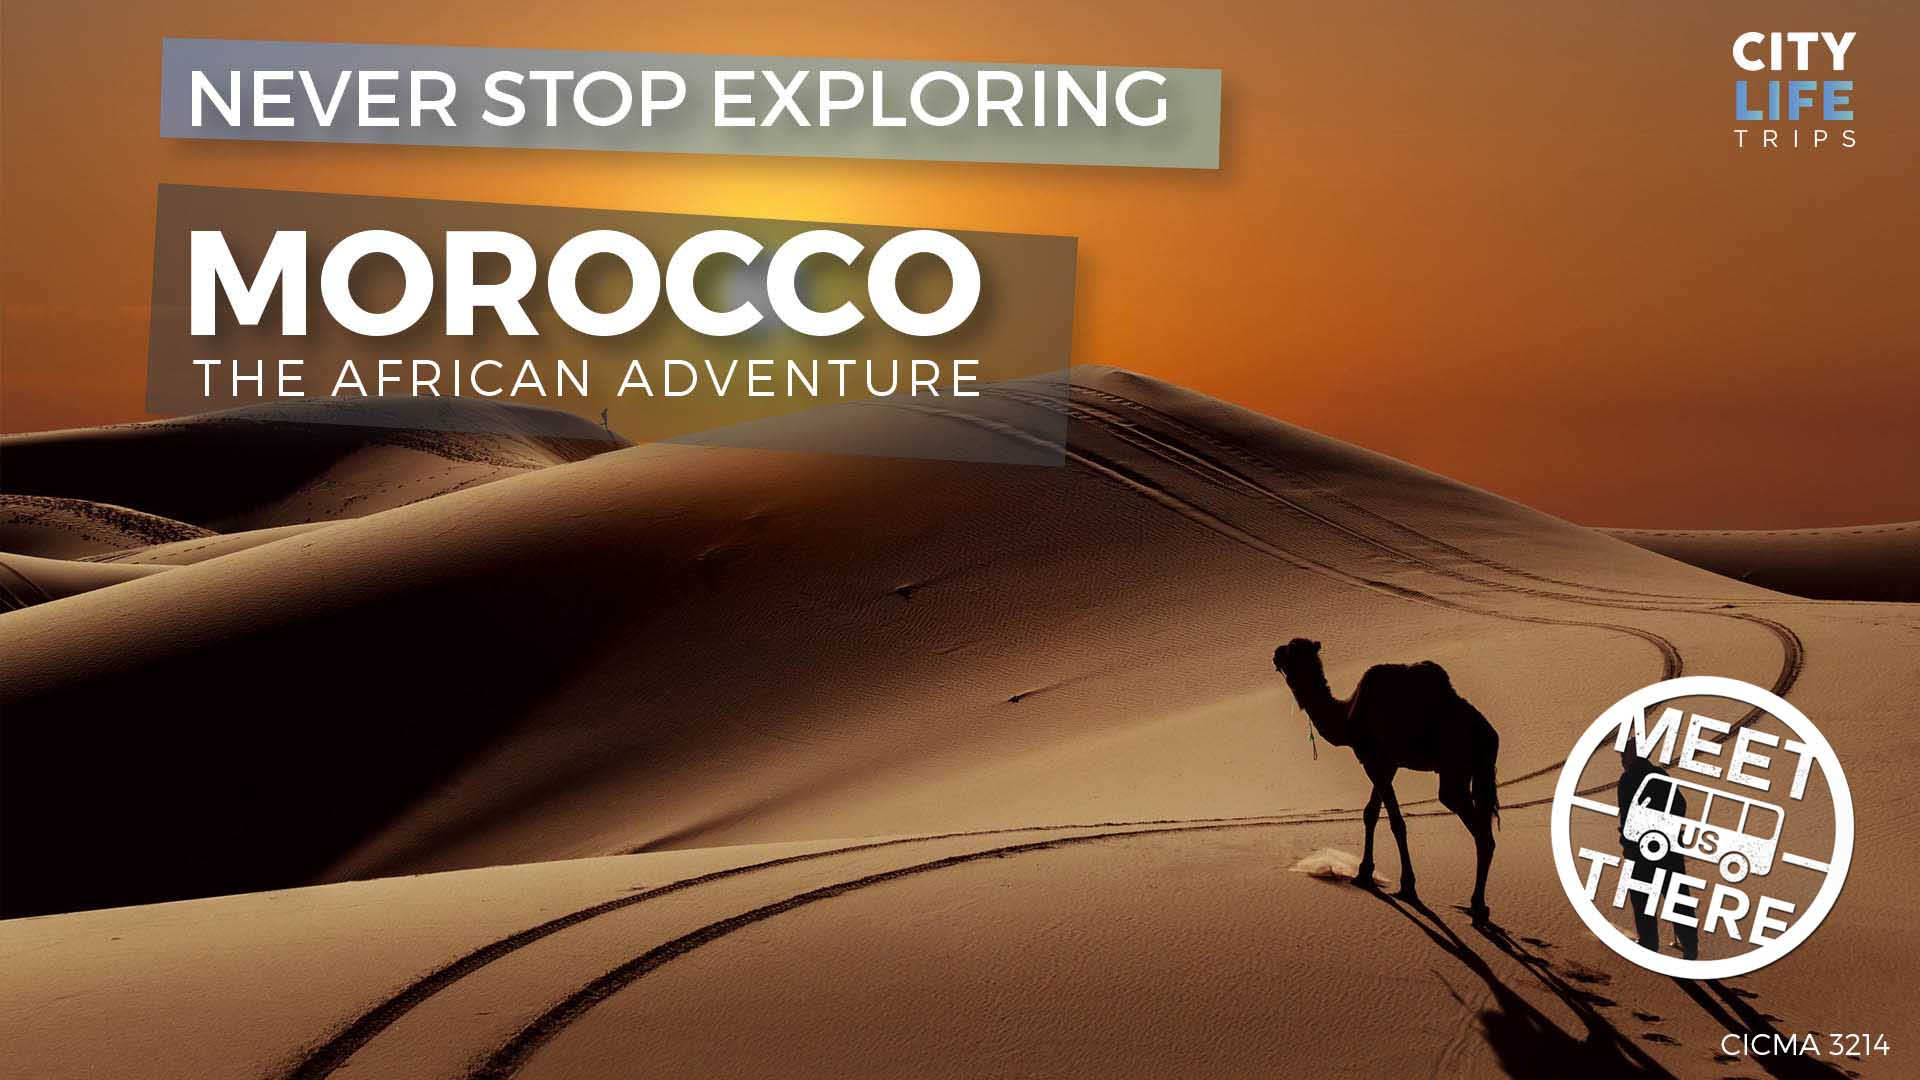 Morocco – The African Adventure – NYE at the Sahara (Meet us There)